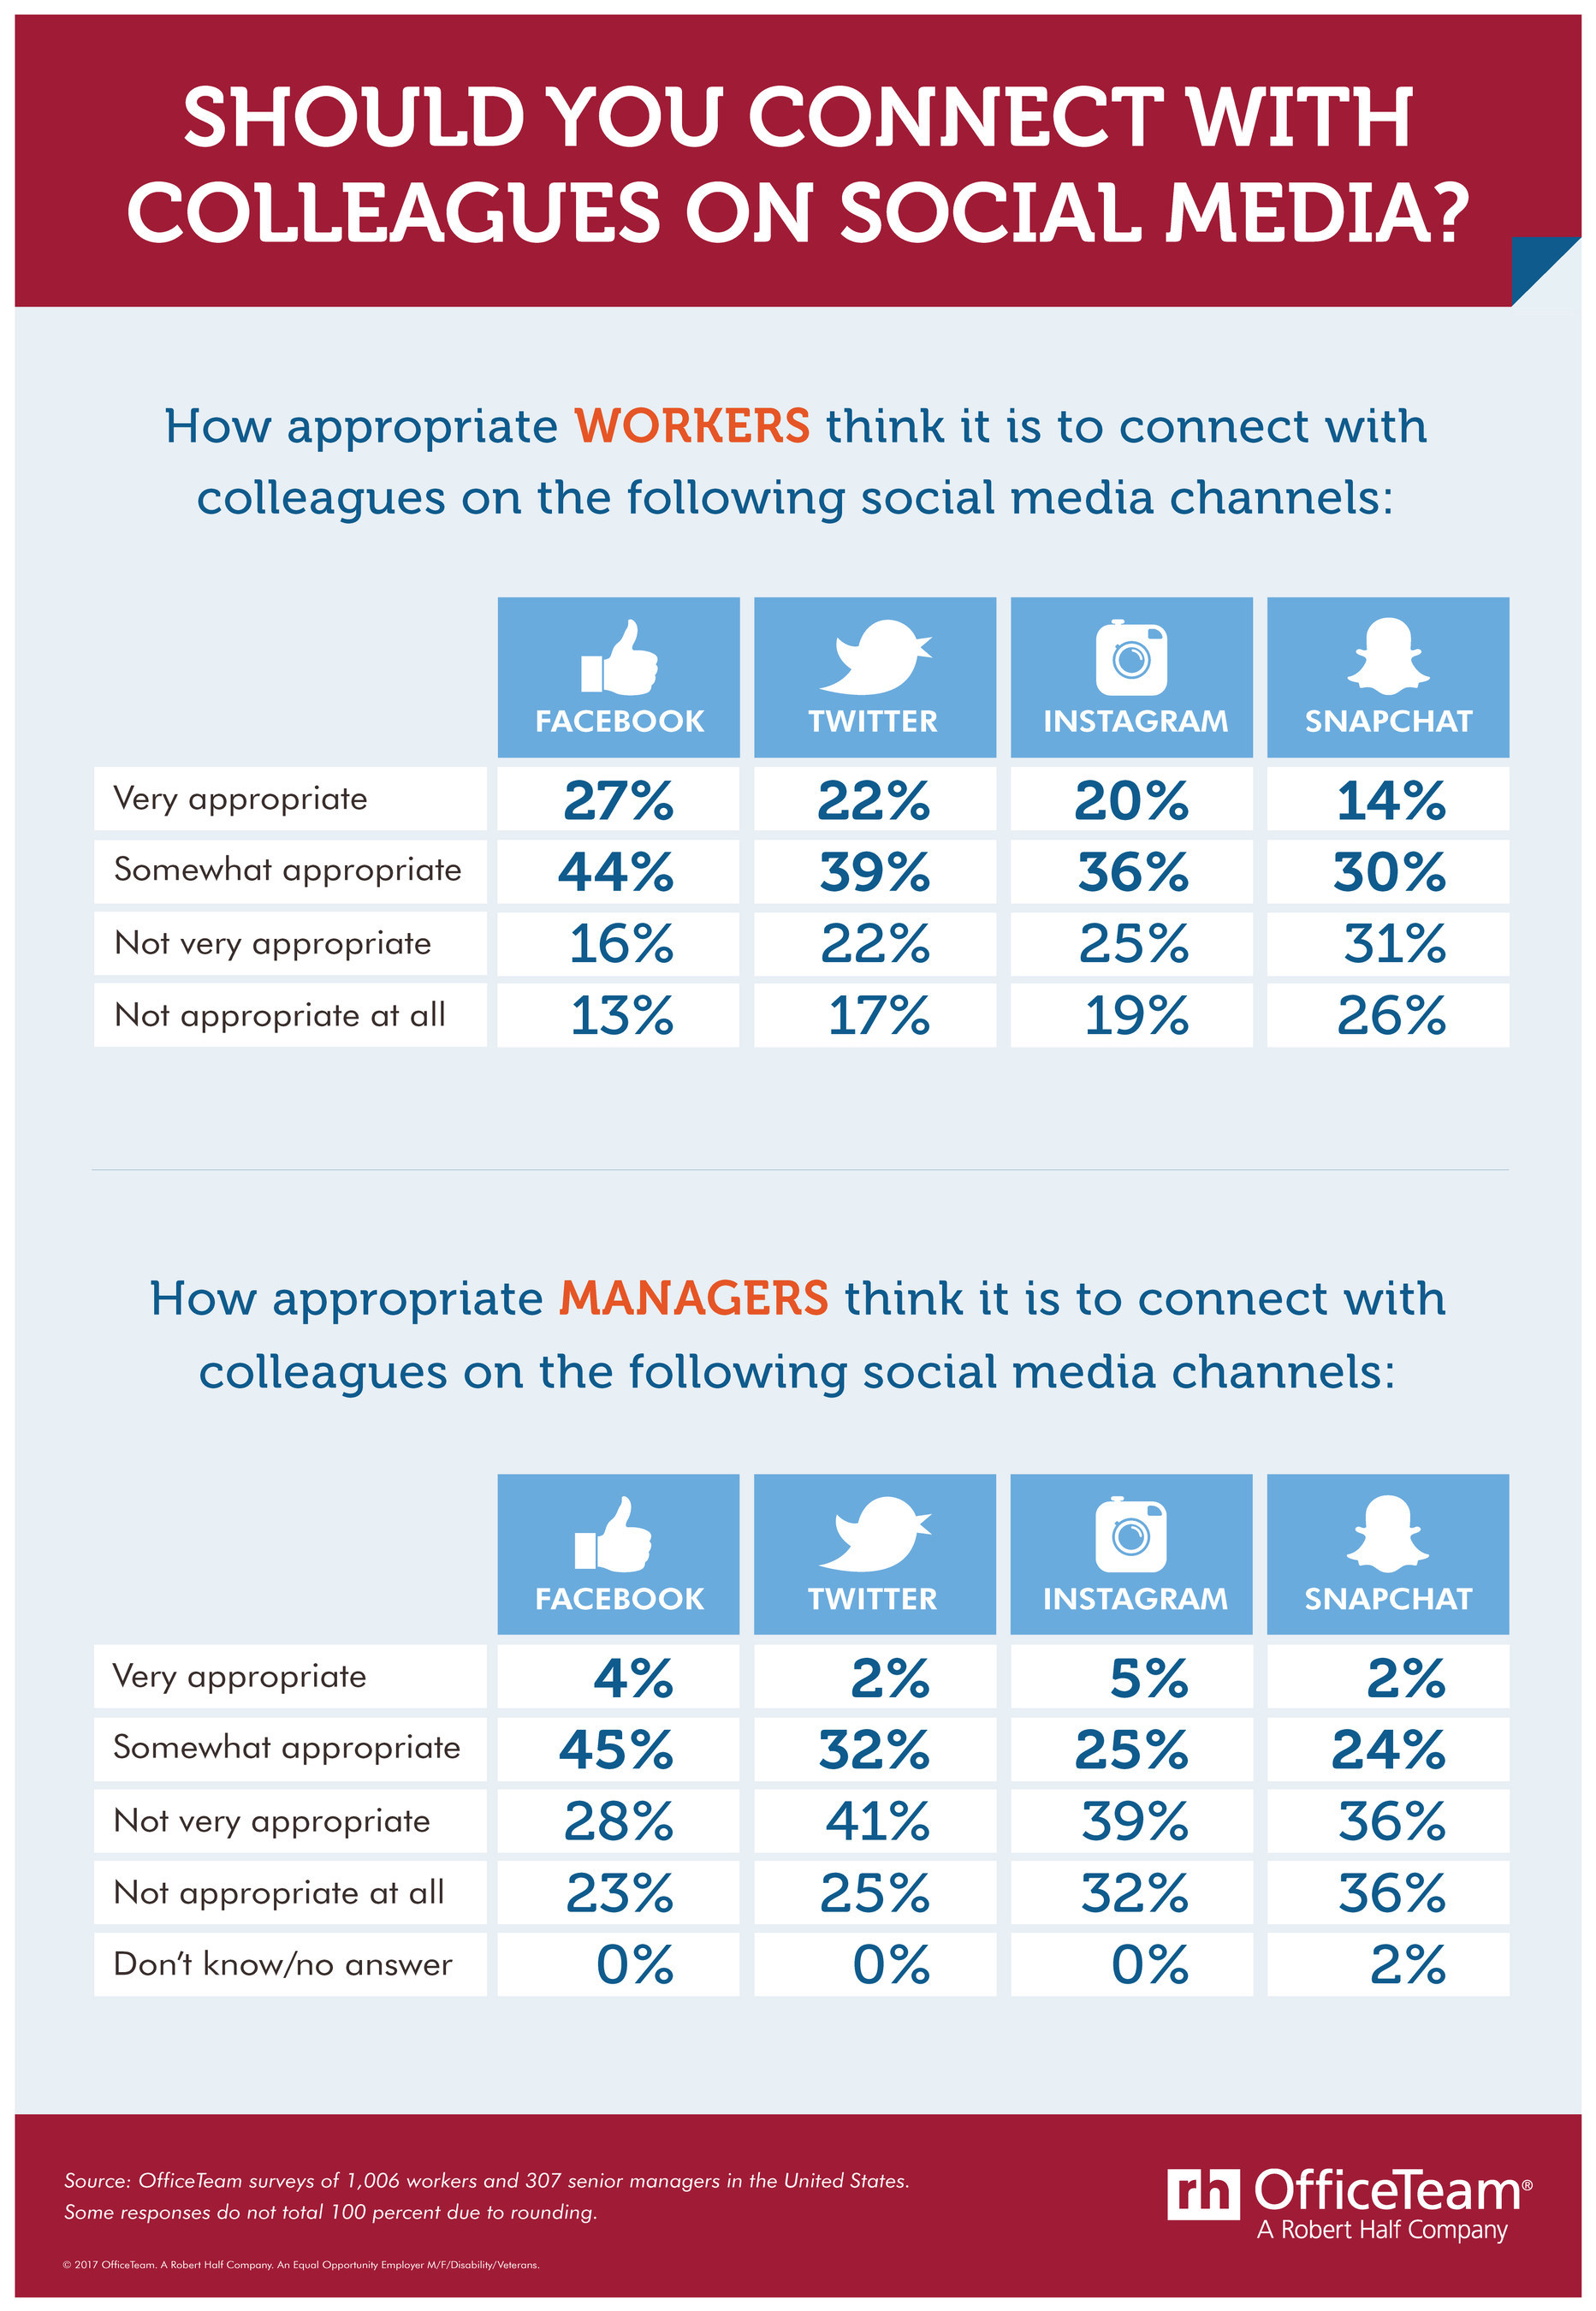 More than 7 in 10 professionals (71%) surveyed by OfficeTeam said it's appropriate to connect with colleagues on Facebook. Slightly fewer feel it's OK to follow coworkers on Twitter (61%), Instagram (56%) and Snapchat (44%). In contrast, less than half of senior managers think it's fine to engage with fellow employees on Facebook, Twitter, Instagram and Snapchat.